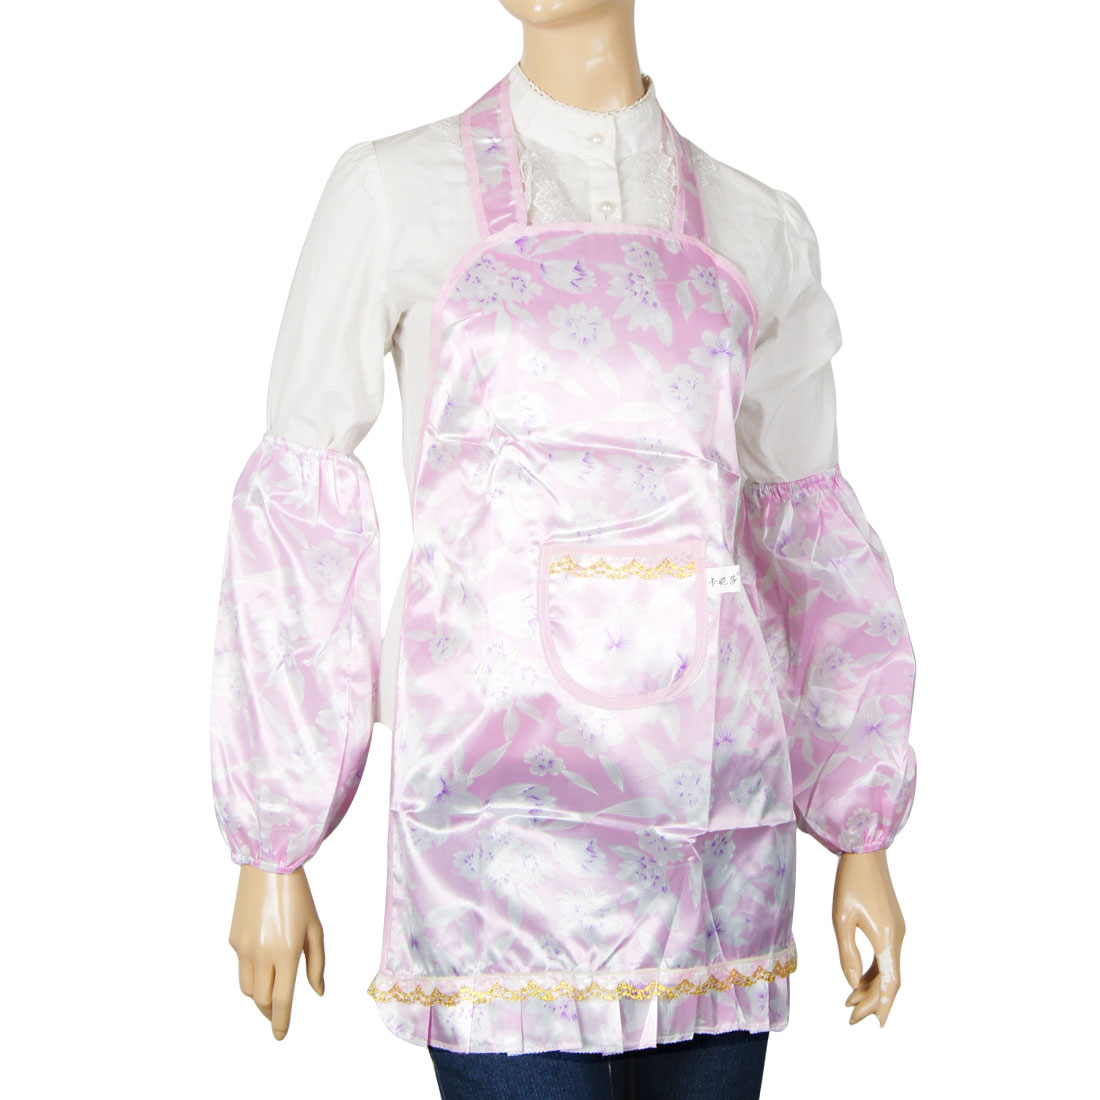 Flower Printed Light Pink Patch Pocket Kitchen Bib Apron for Woman